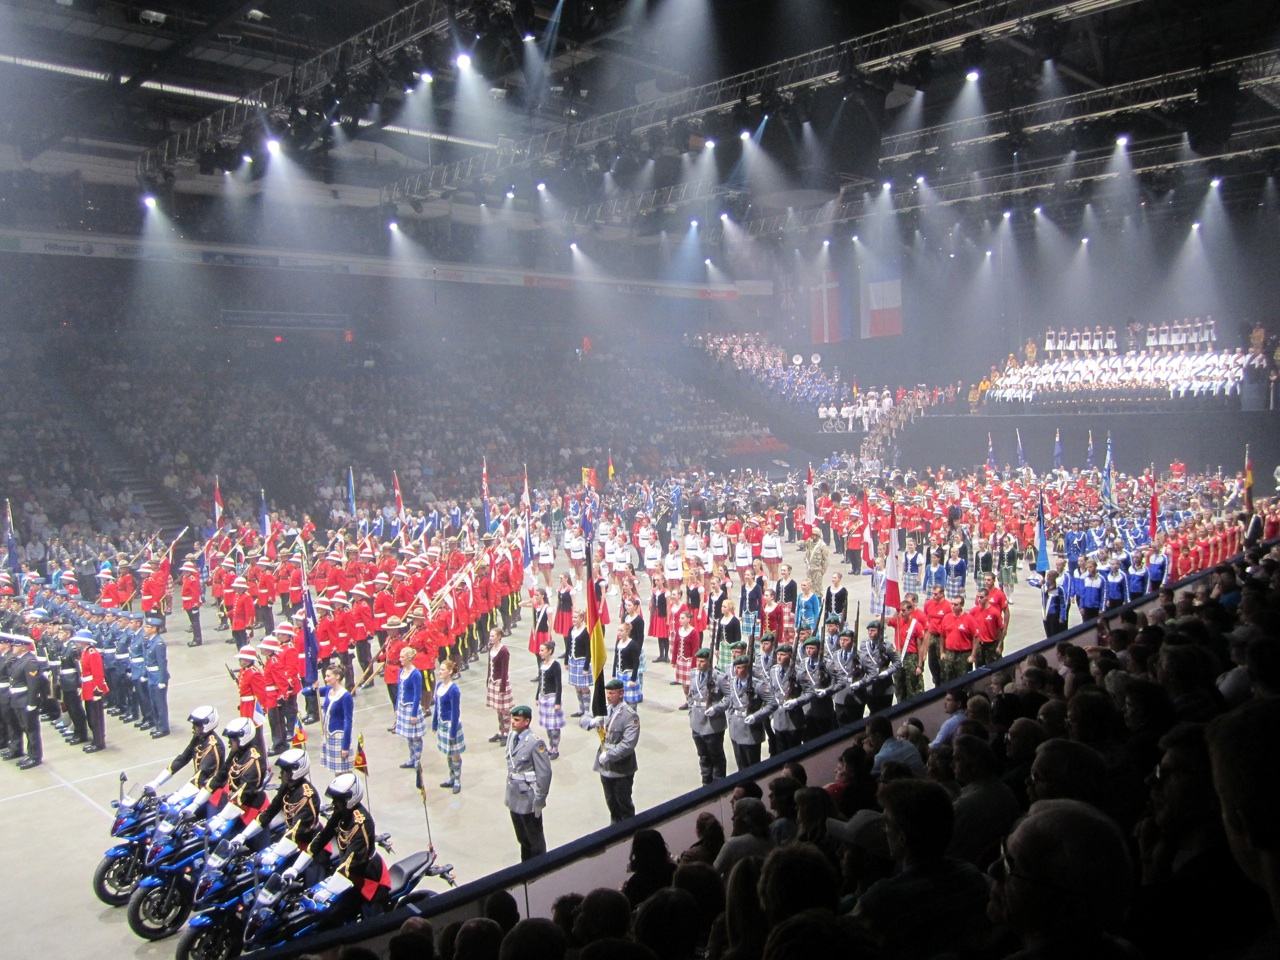 All The Performers Out On The Floor At The End Of The Show For The Big Finale